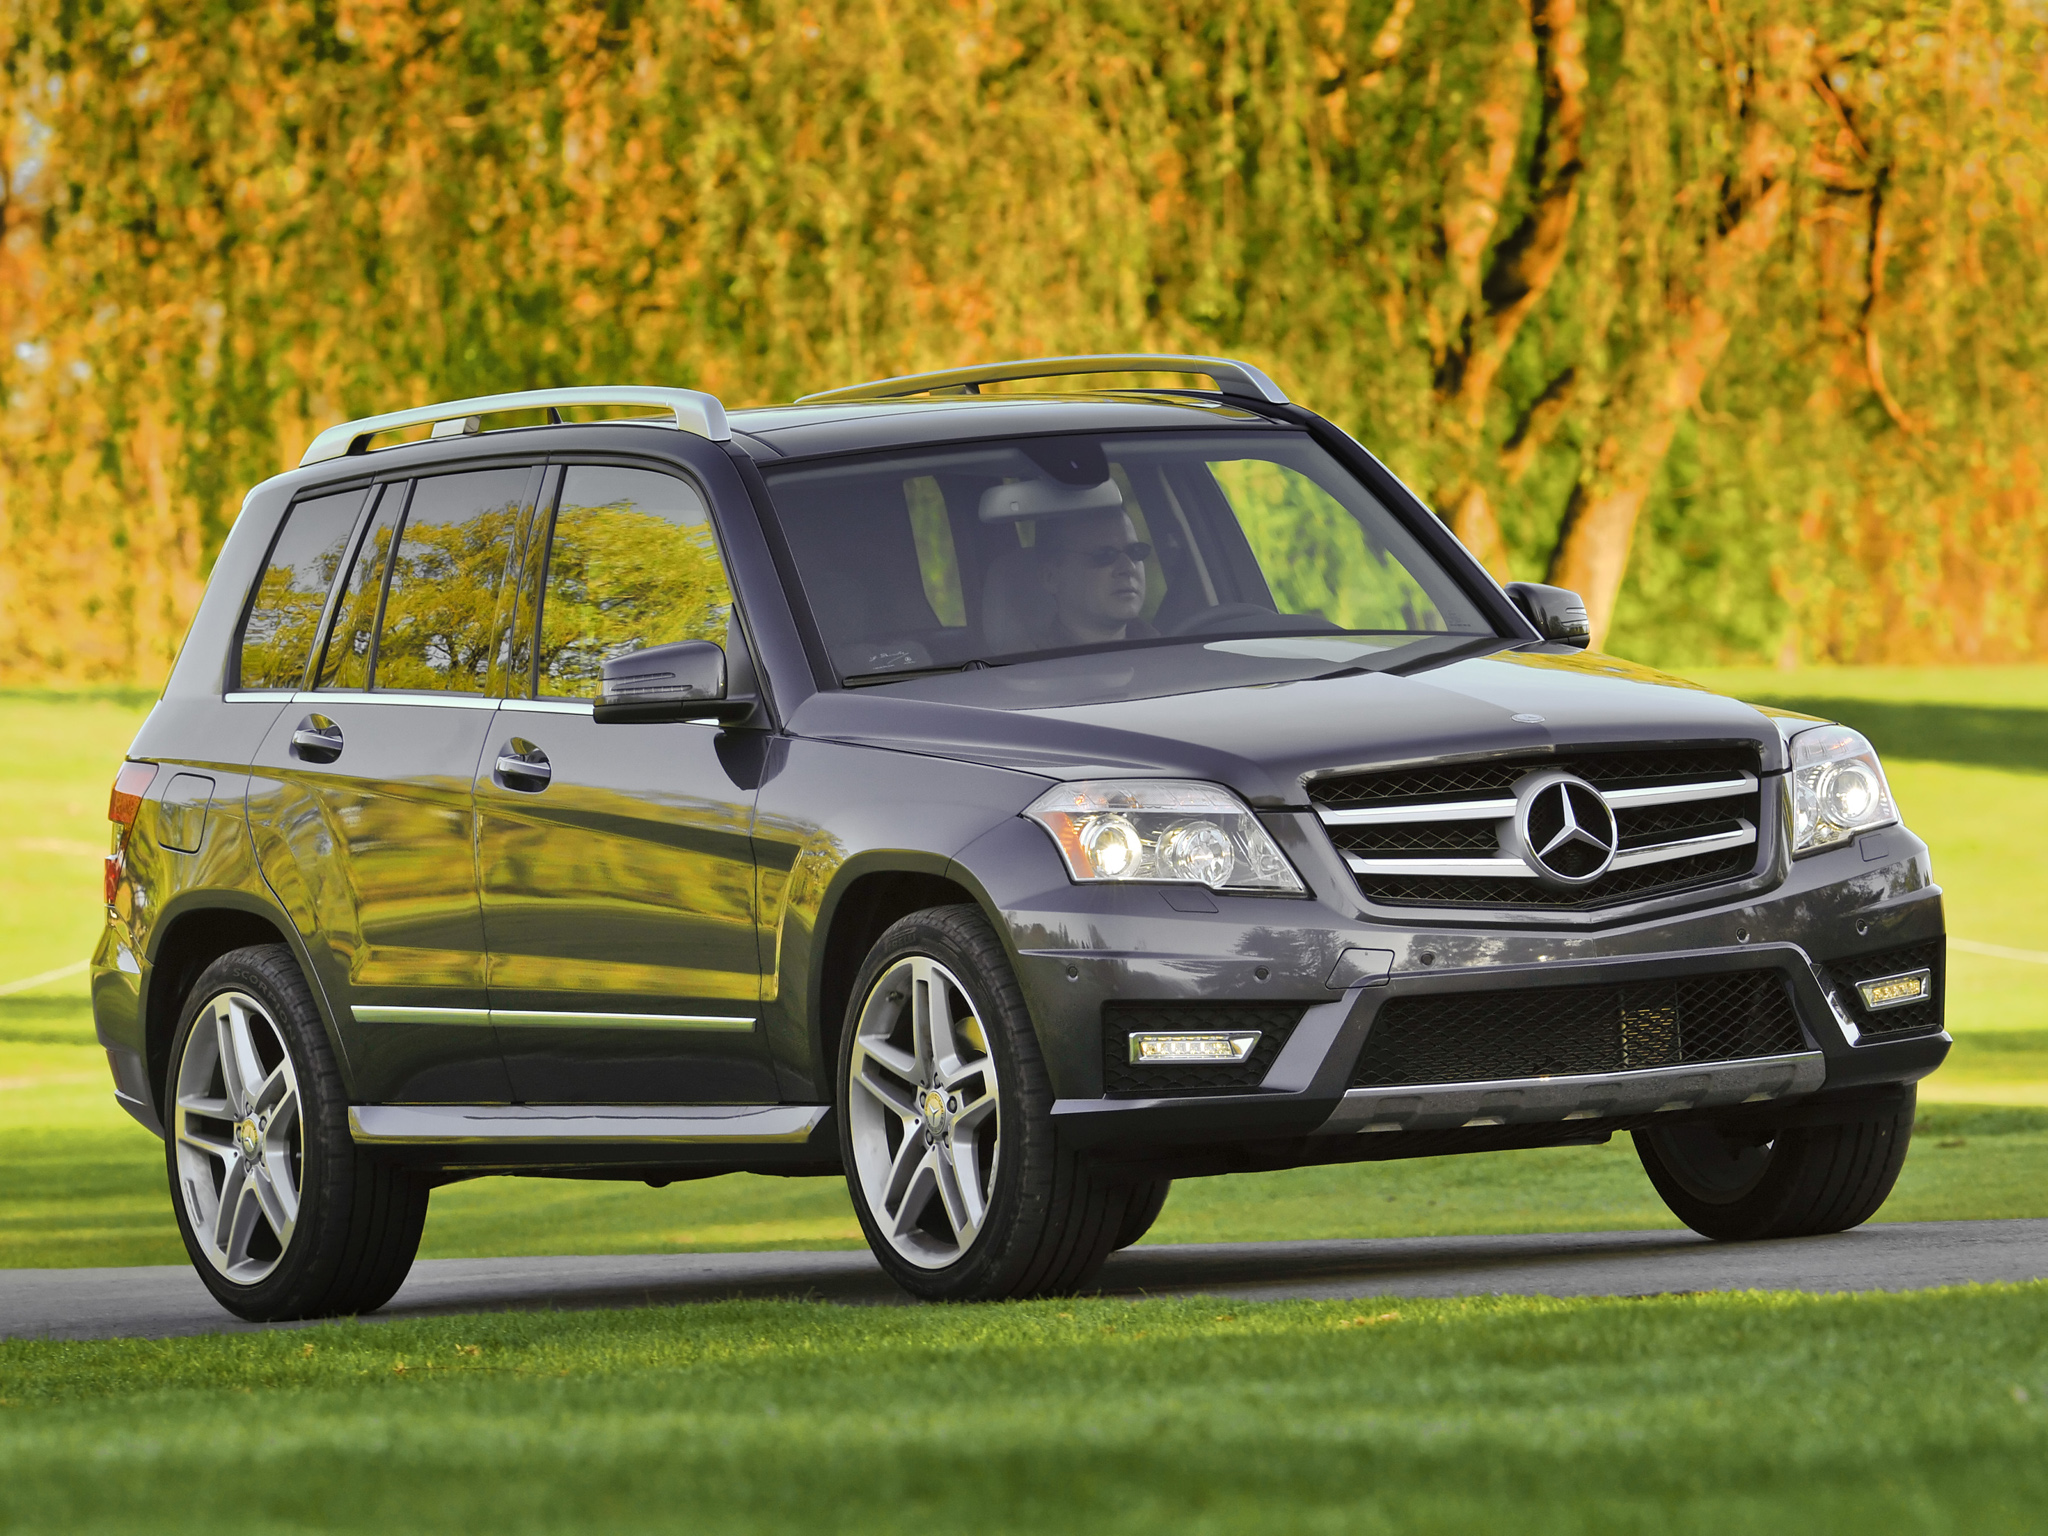 Mercedes benz glk amg picture 90365 mercedes benz for Mercedes benz glk350 amg